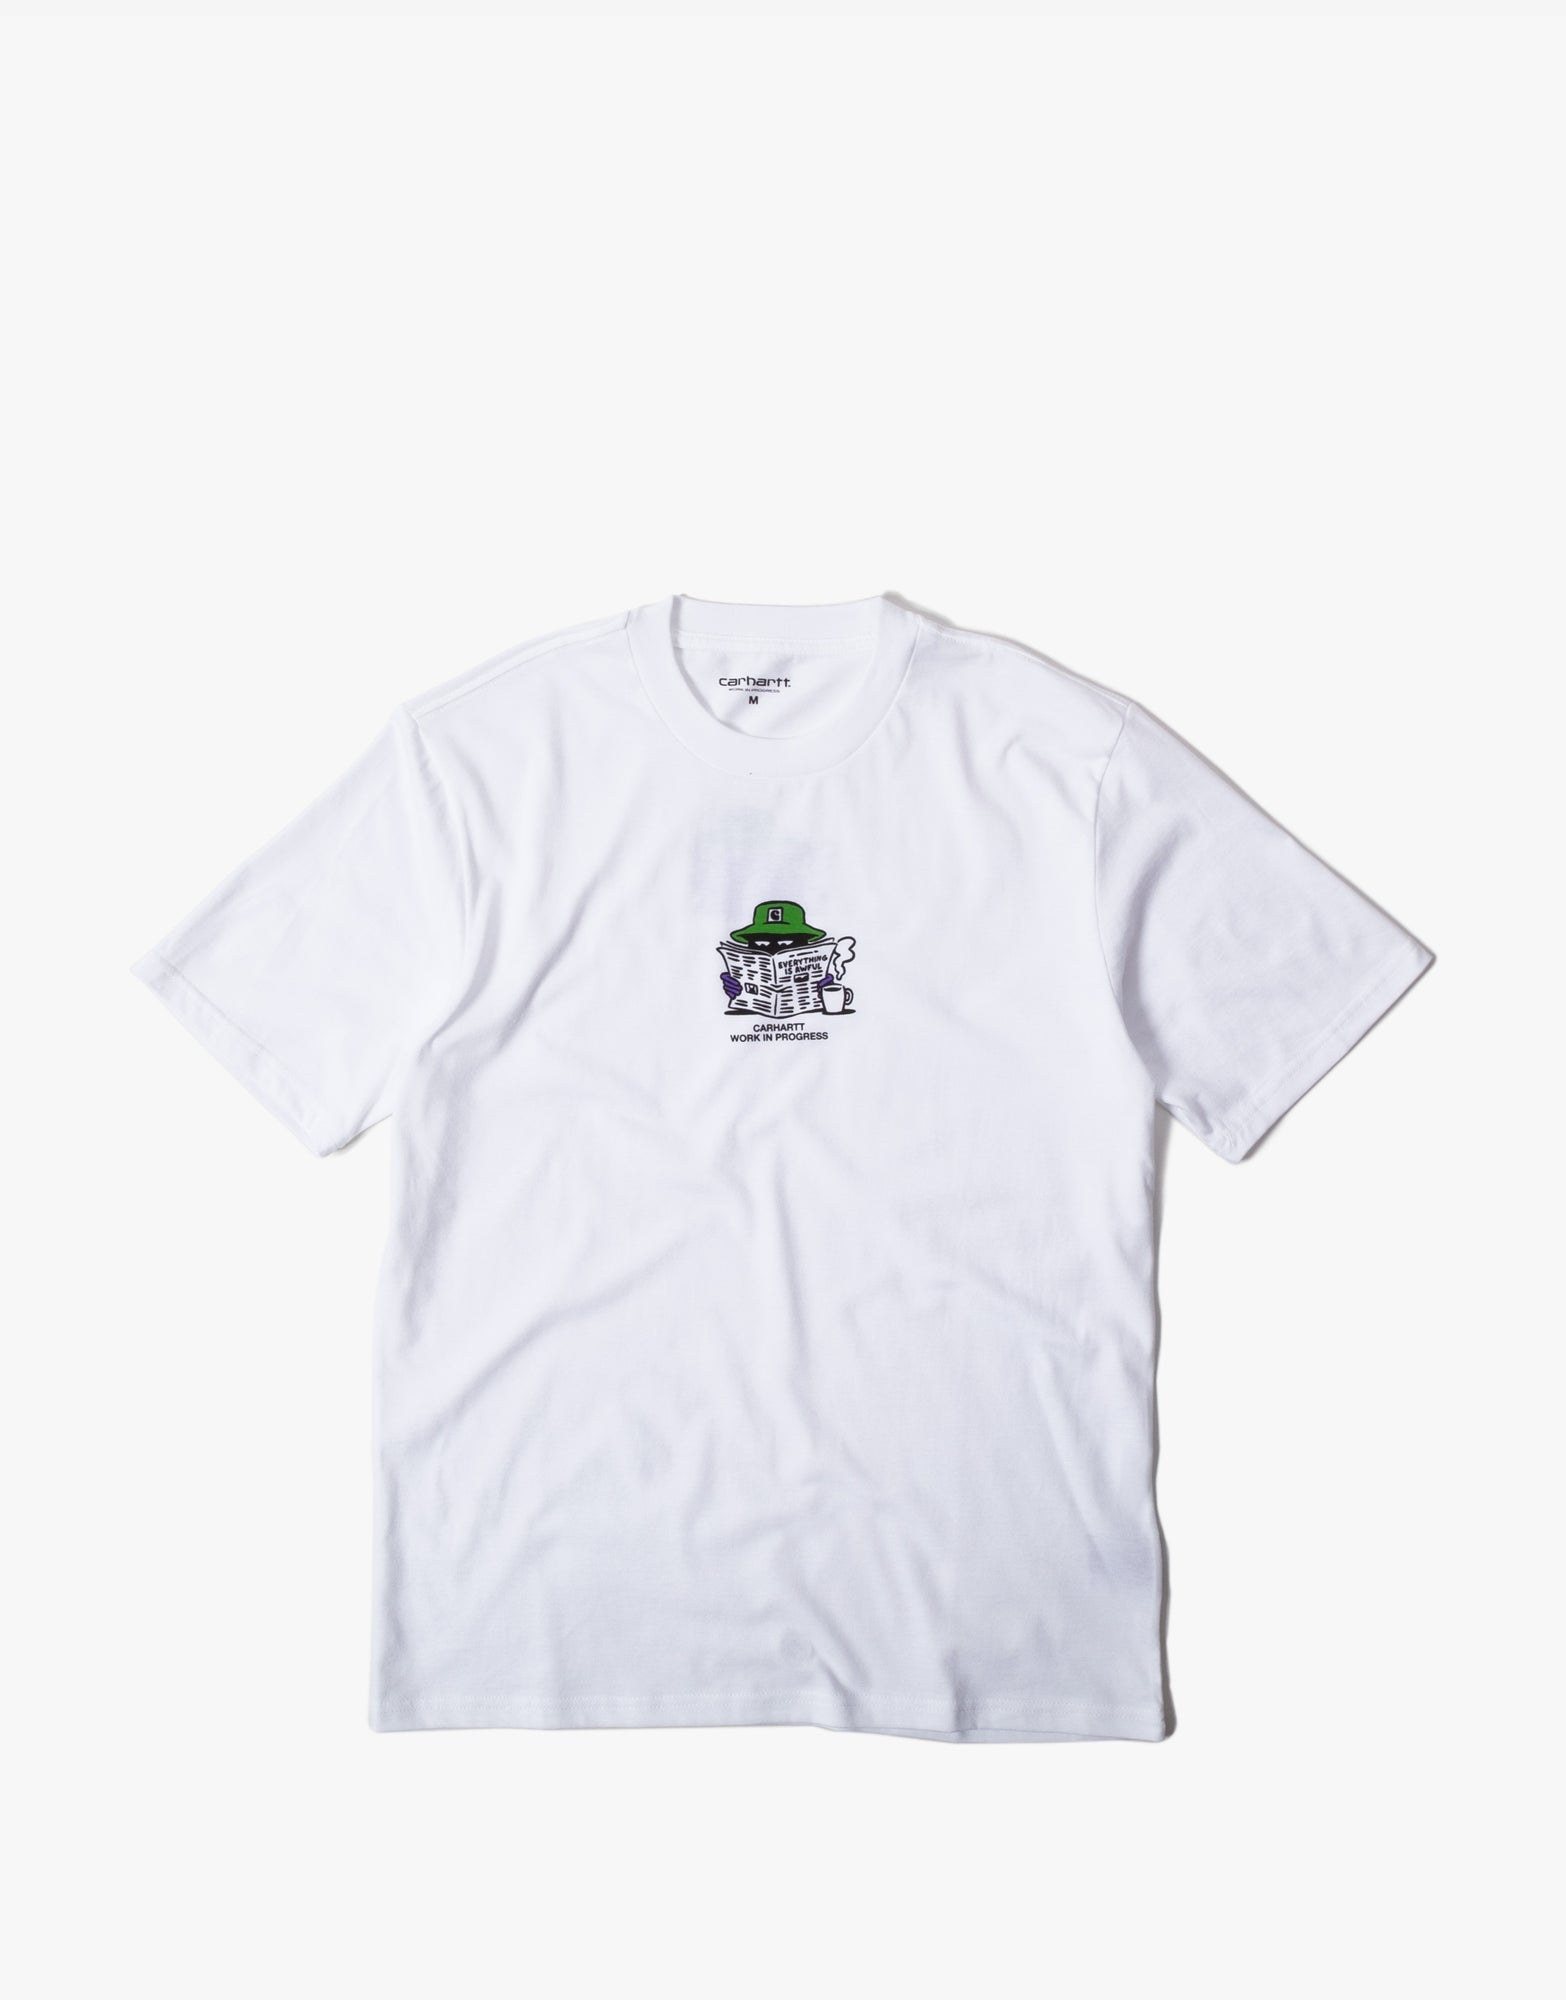 Carhartt Everything Is Awful T Shirt - White